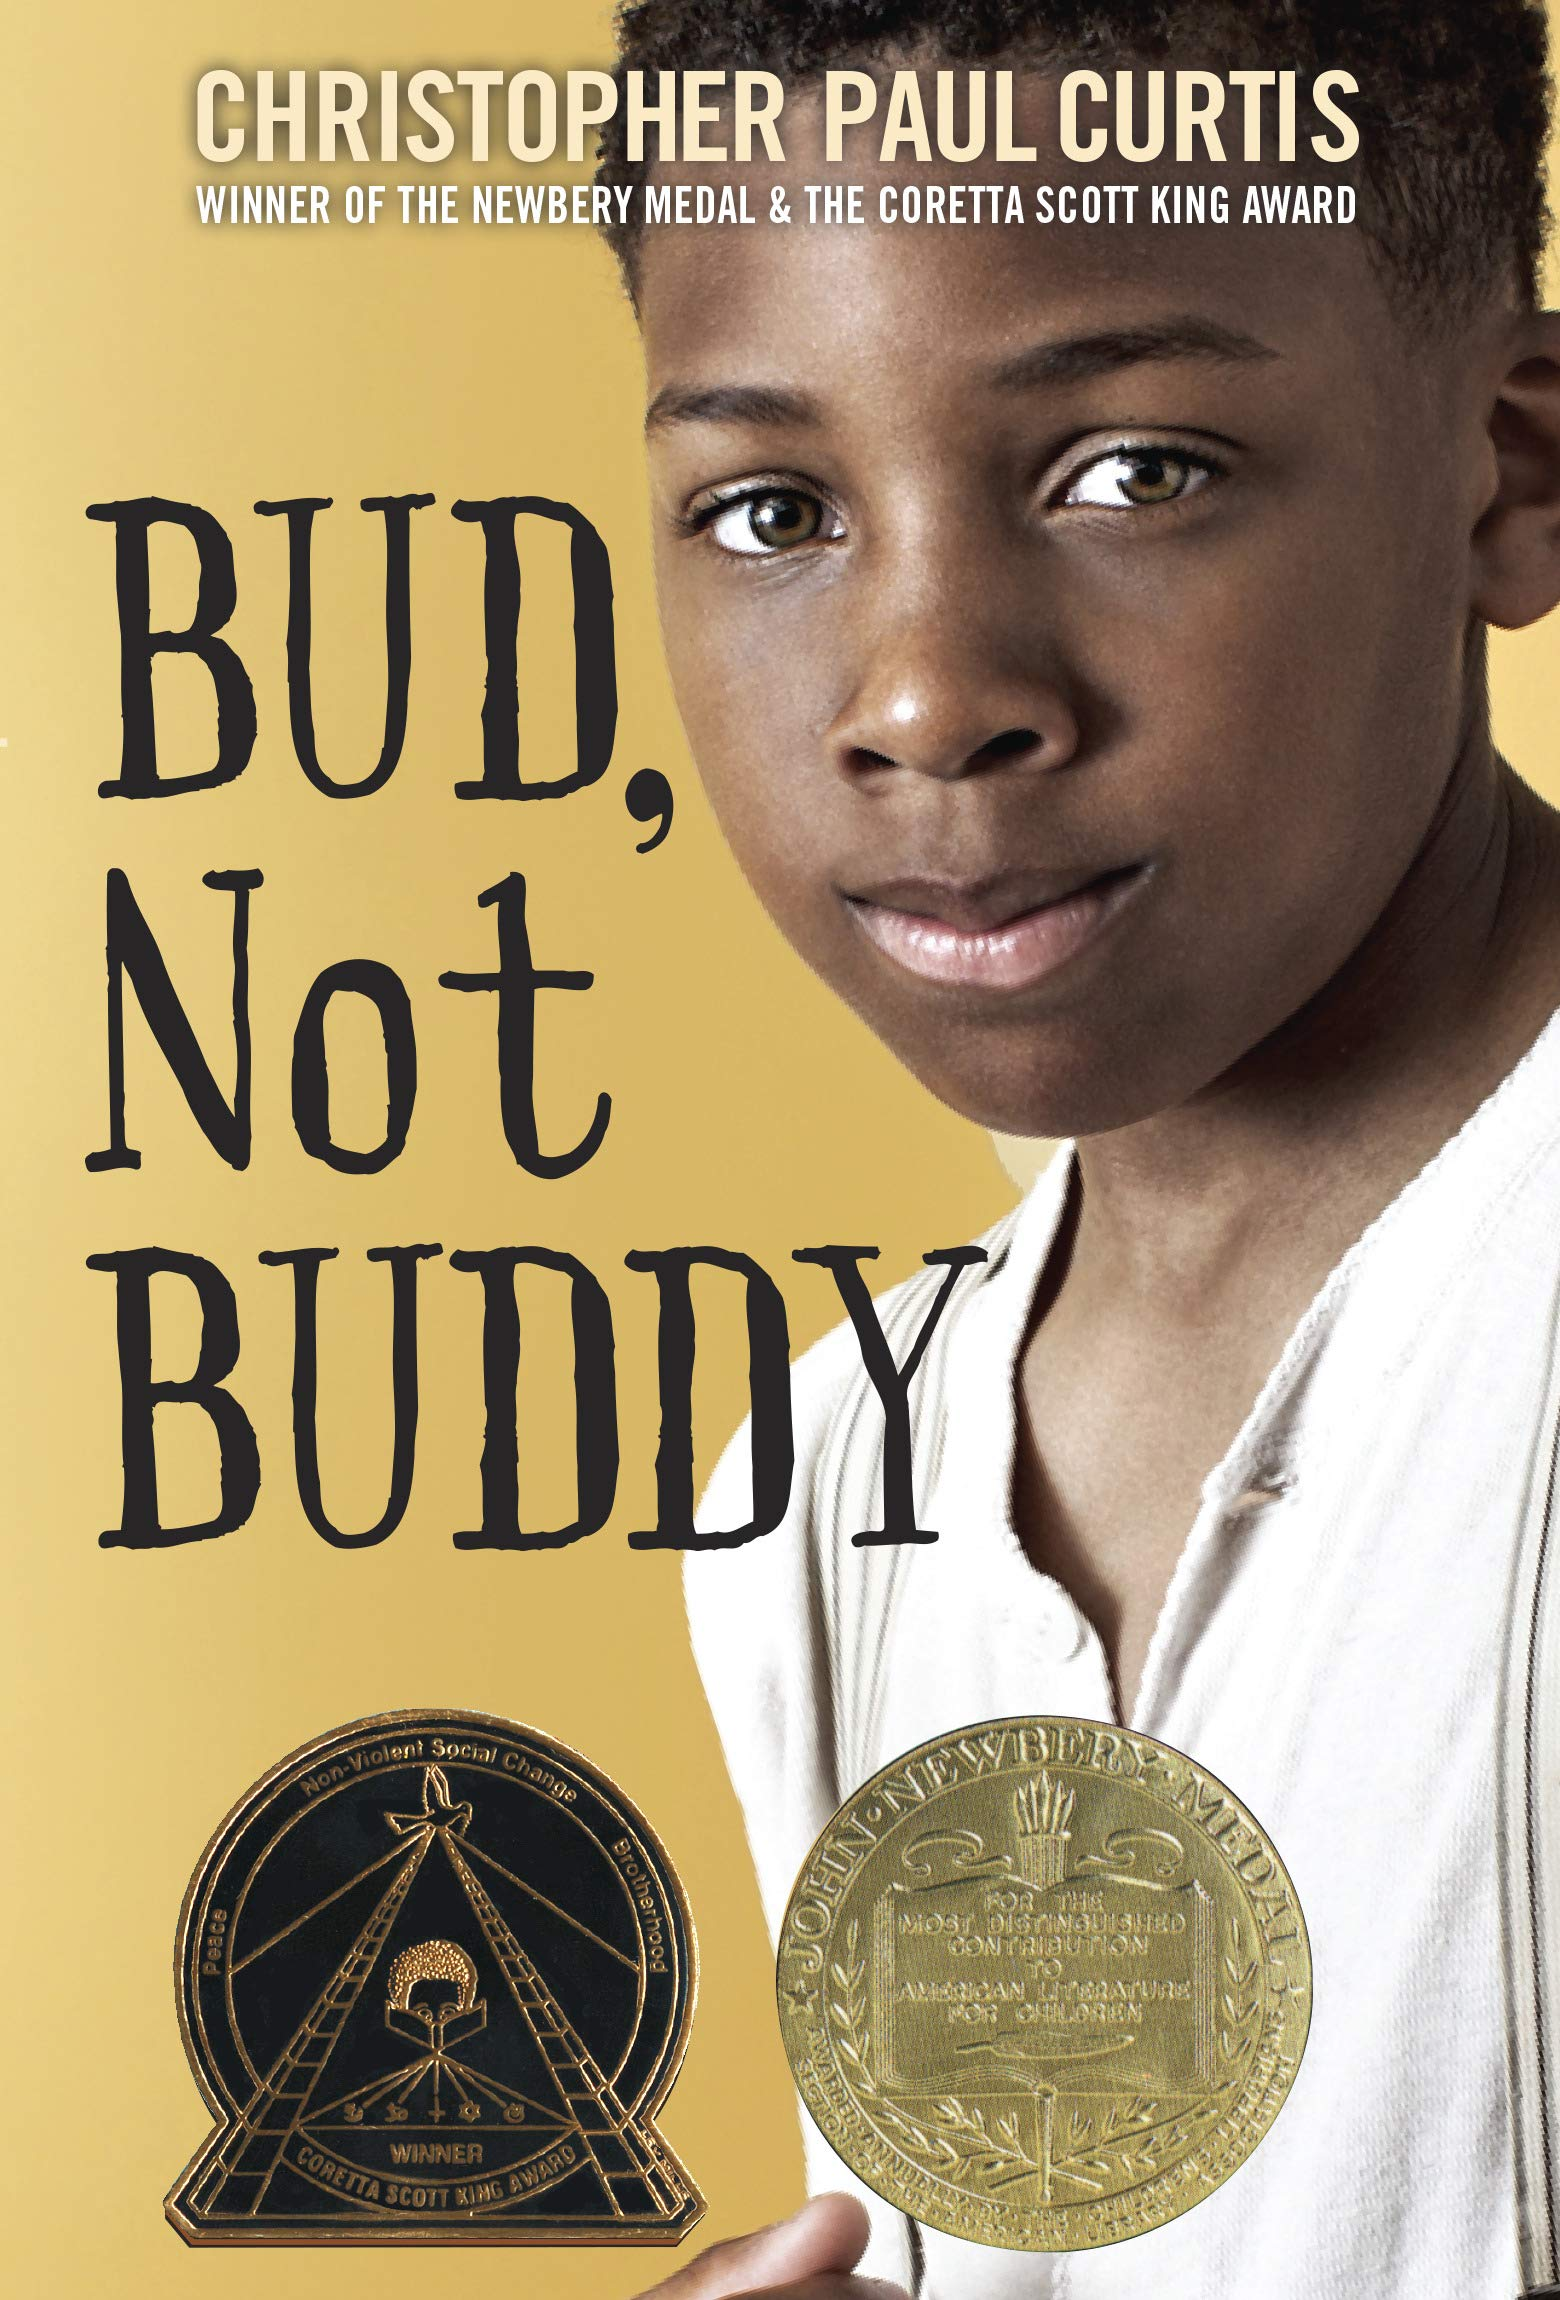 bud not buddy christopher paul curtis 9780439402002 amazon com